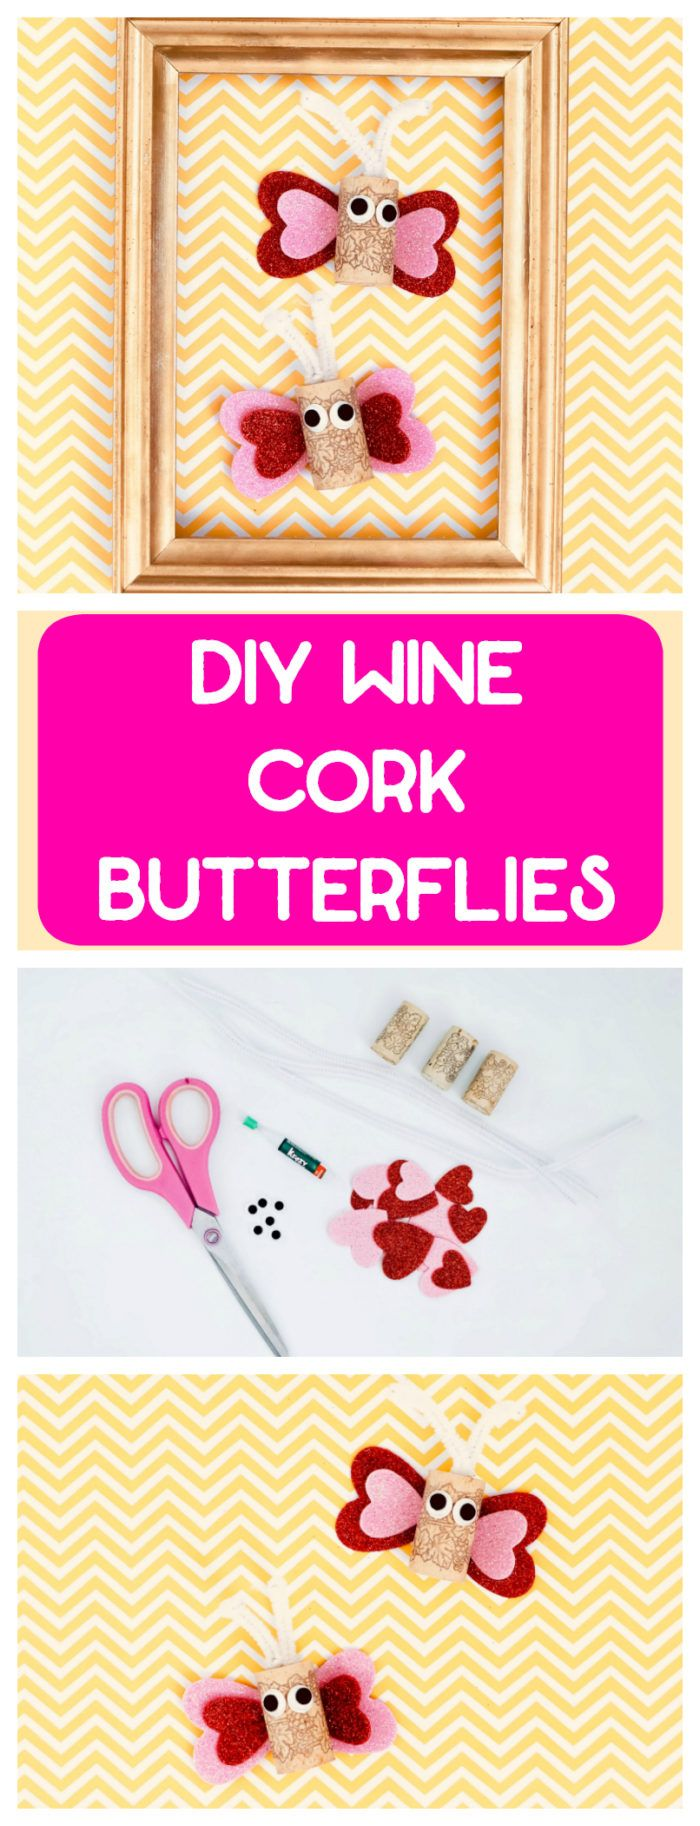 How to make diy Wine Cork Butterflies. These are super easy and really cute butterflies. This would be a fun family or kids craft project as well. #crafts #kids #DIY #winecorks